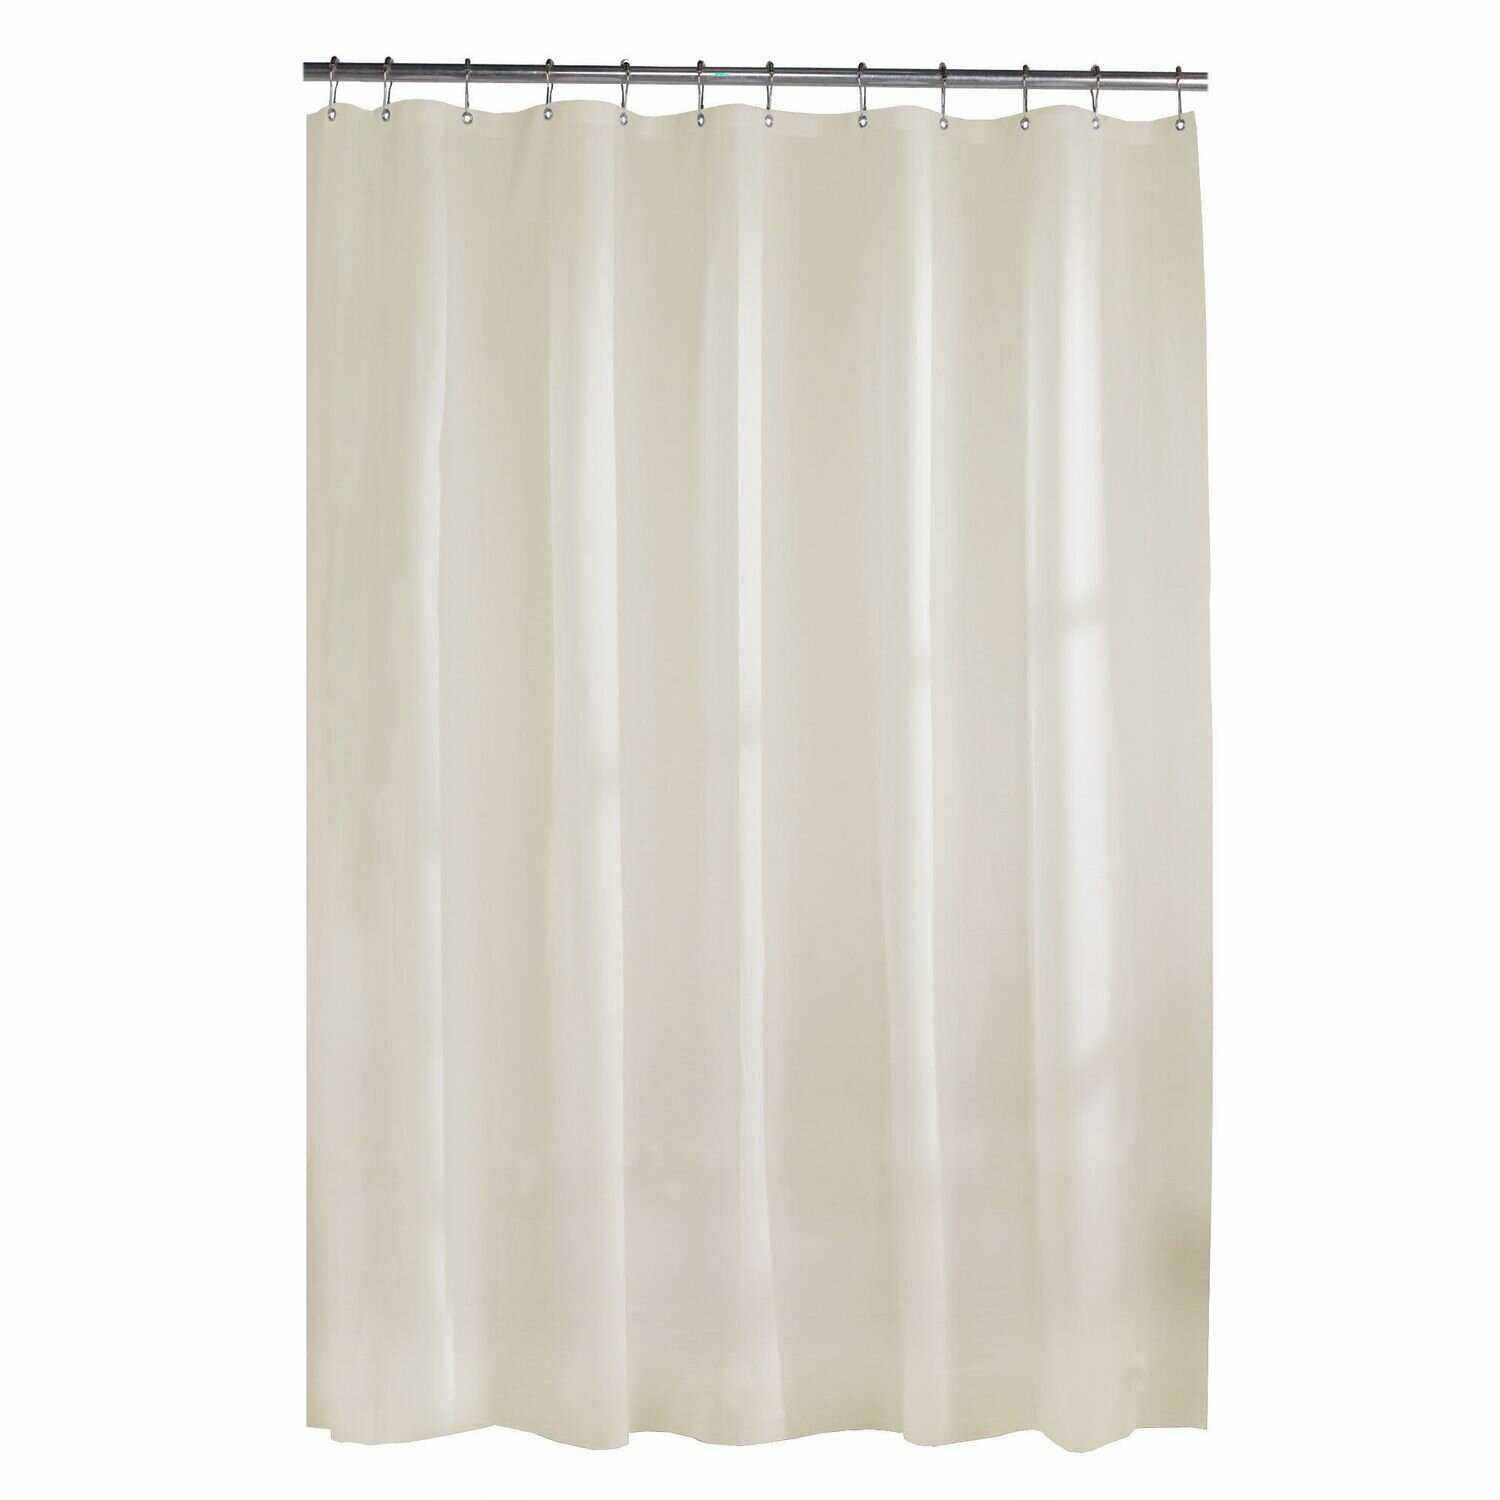 Seashell Shower Curtain Walmart | Walmart Shower Curtain | Cheap Cloth Shower Curtains